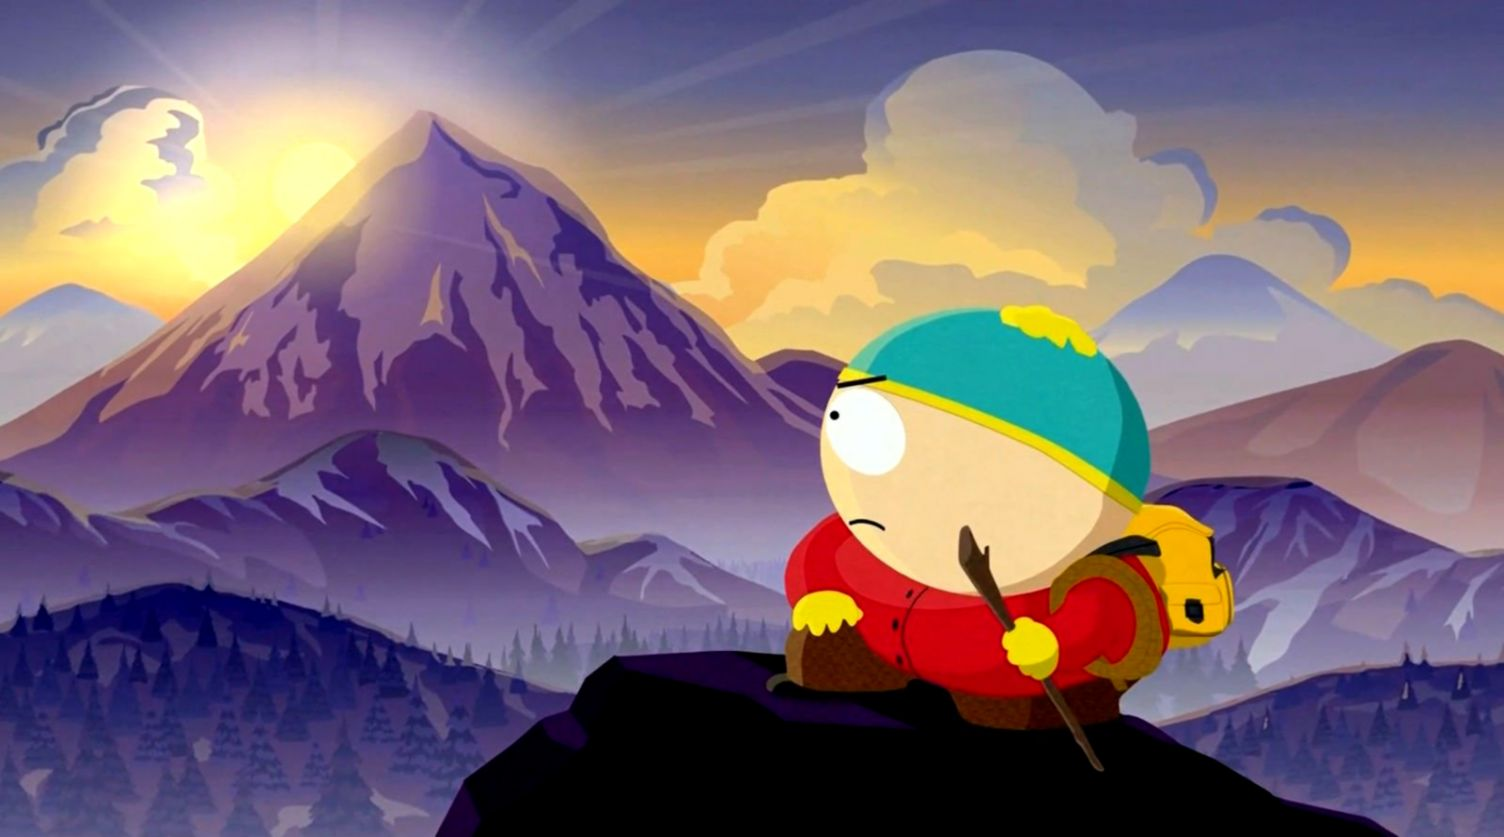 South Park Hd Wallpaper Gold Wallpapers